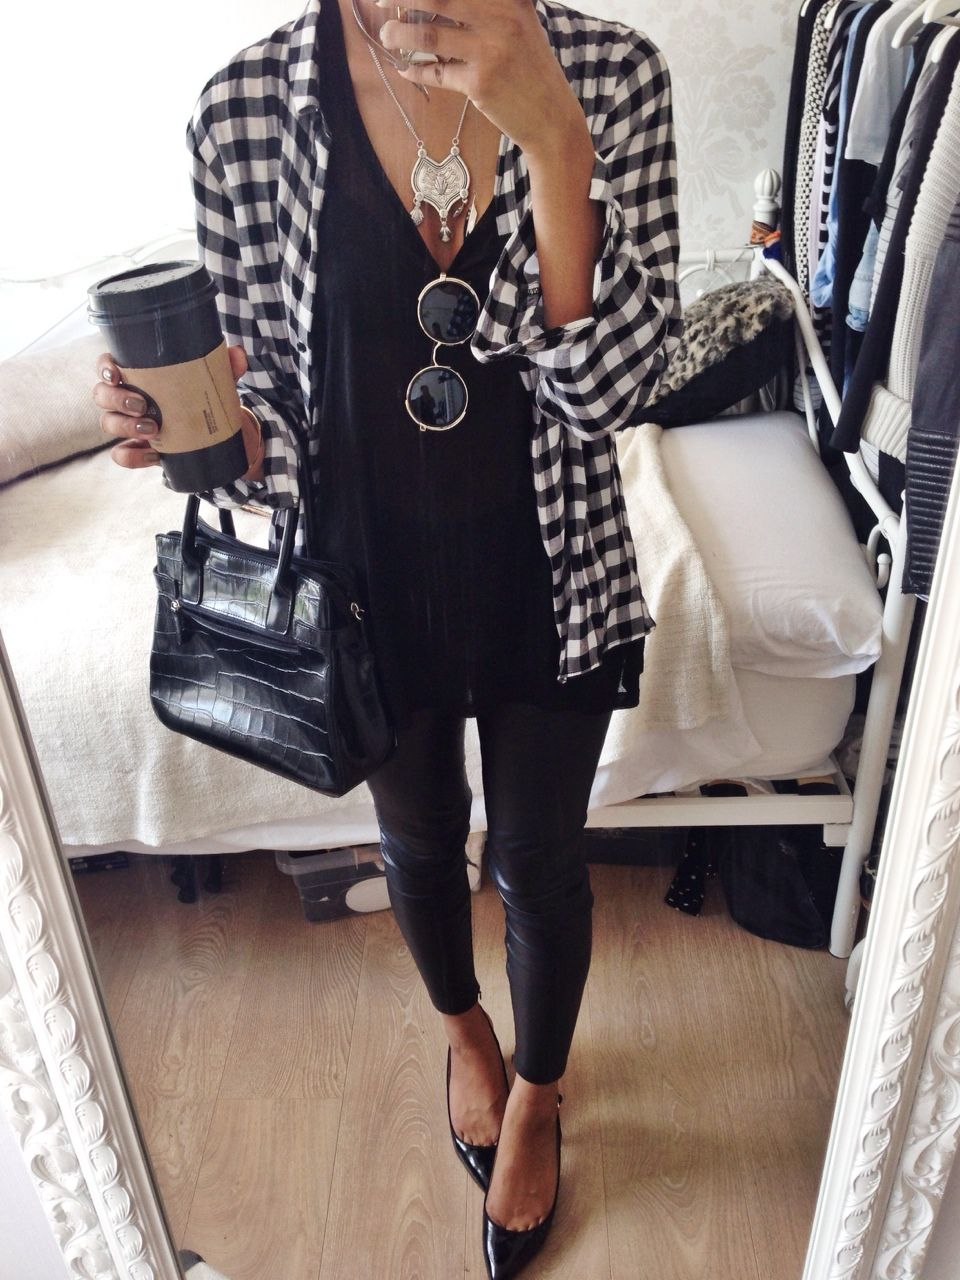 Flannel outfits with leggings  Monochromatic is slimming Not everyone can wear